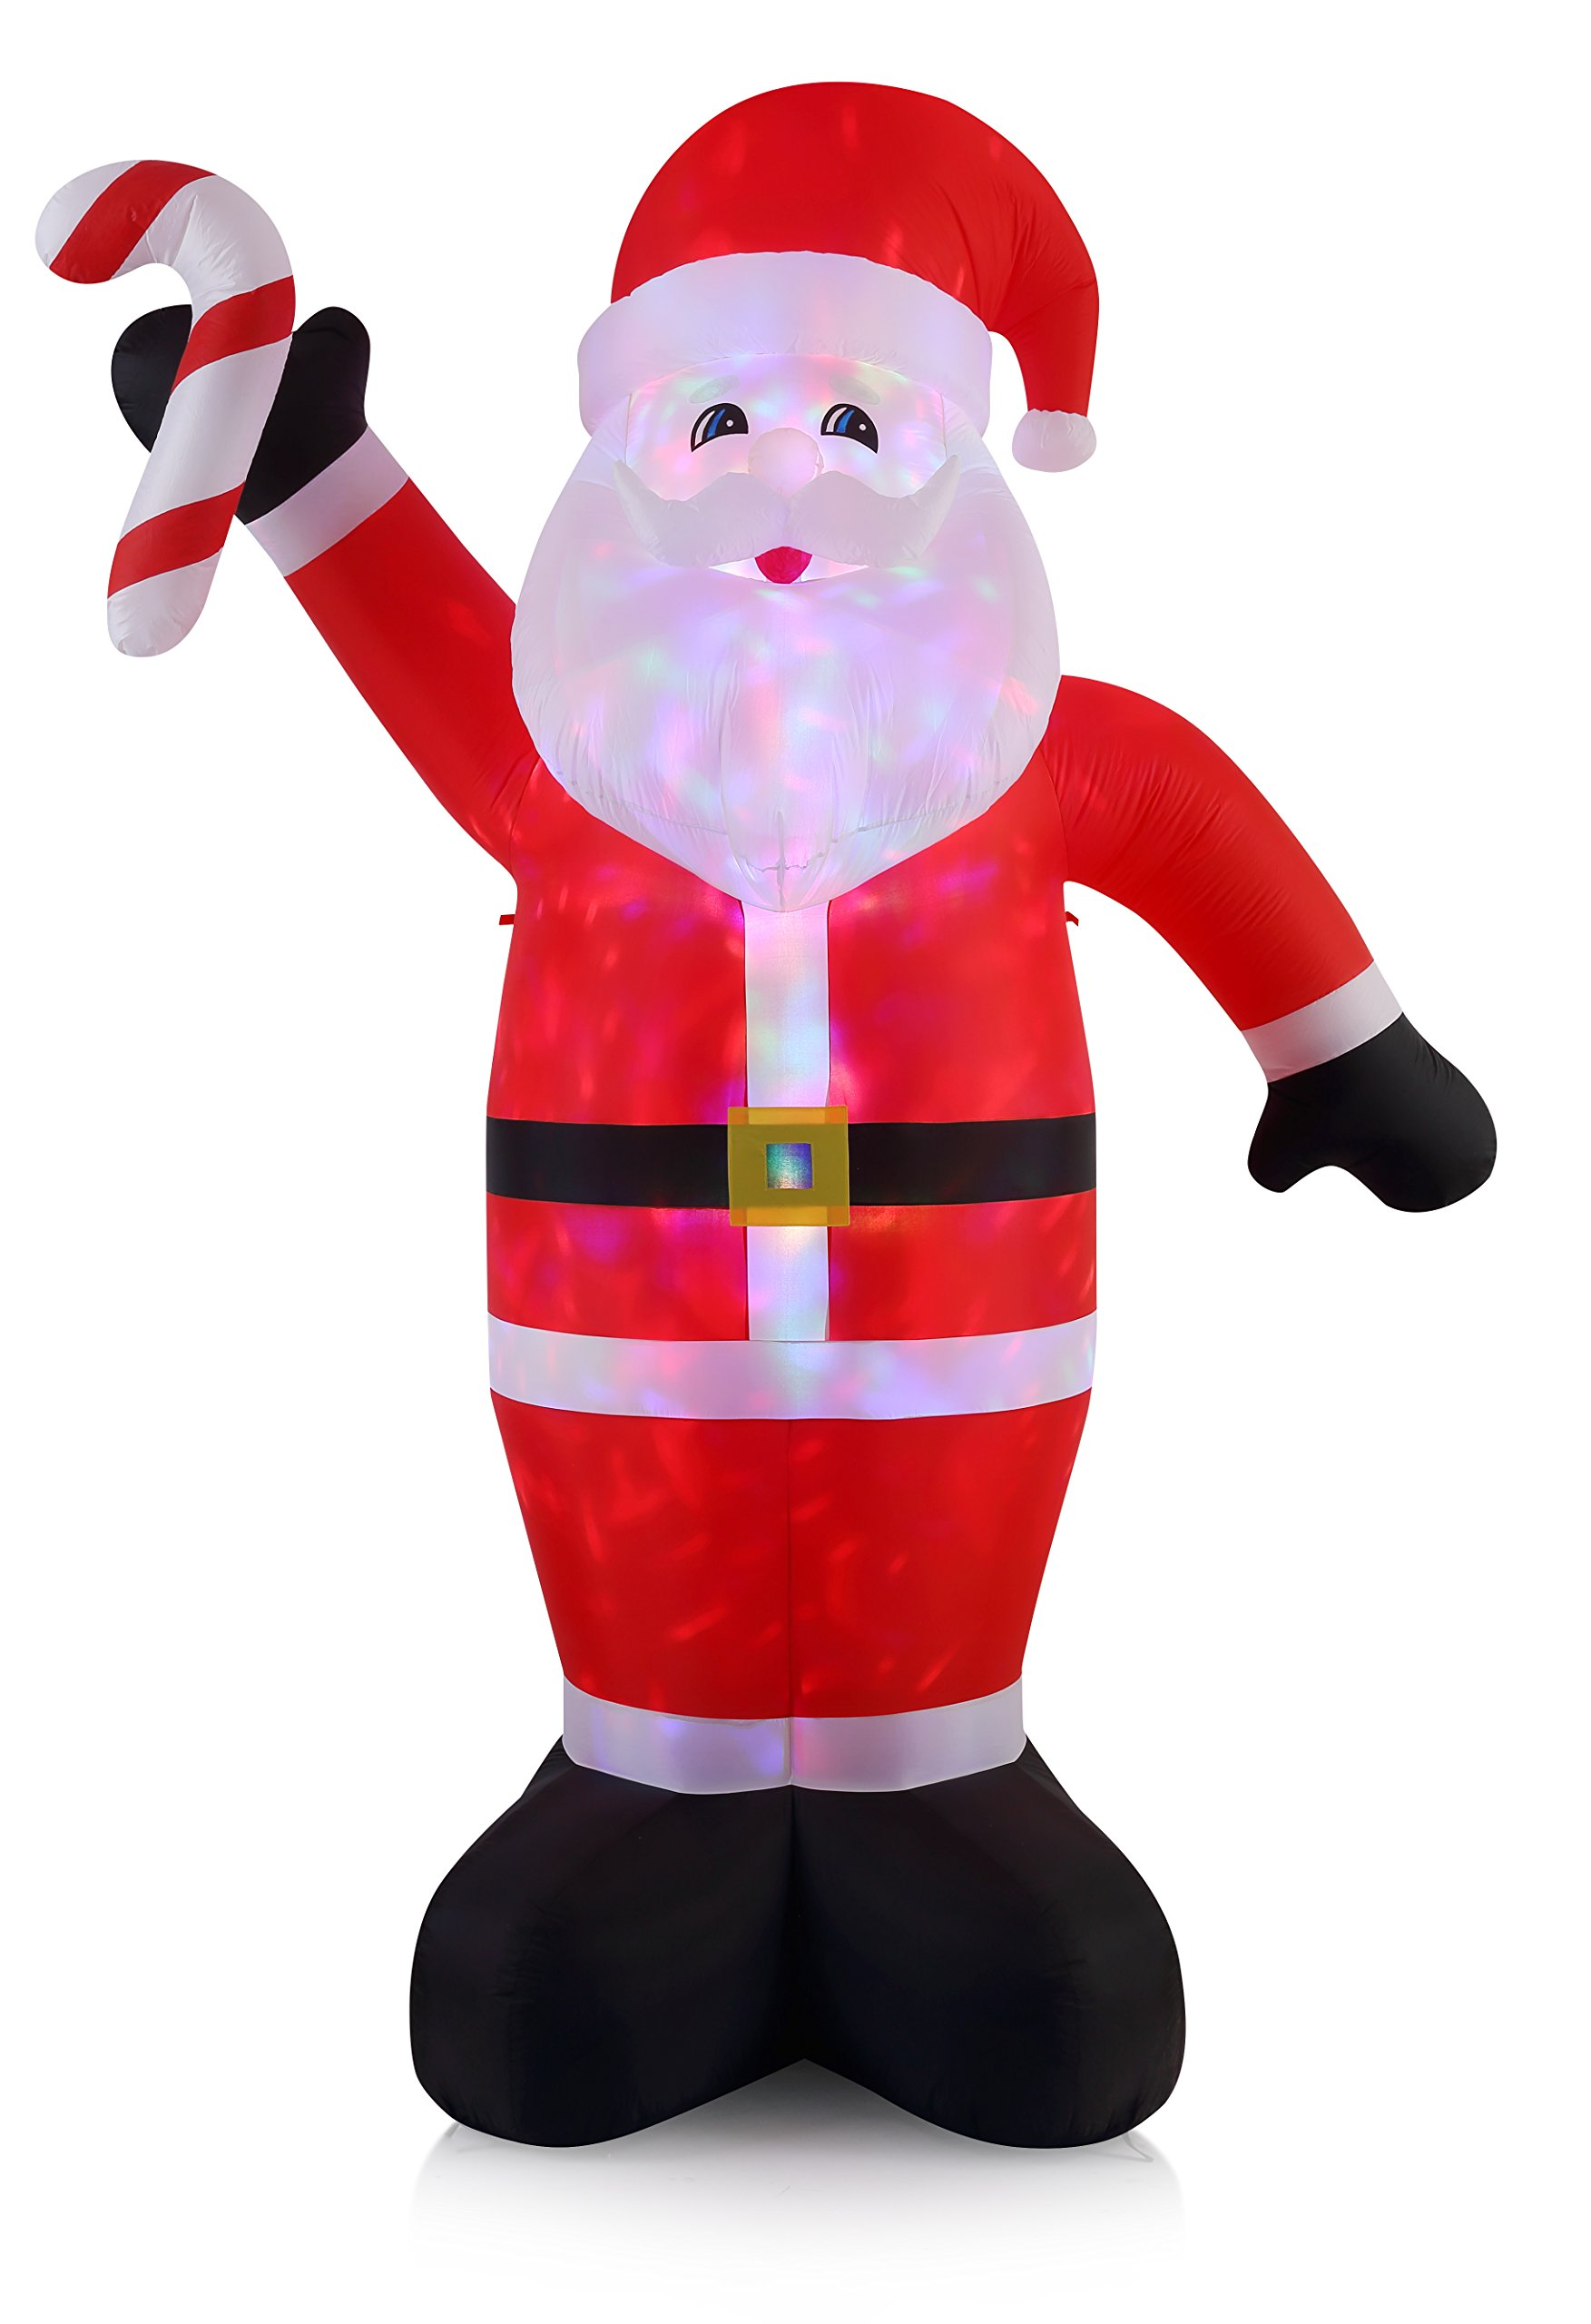 VIDAMORE 12FT Tall Christmas Inflatable Santa Lawn Yard Garden outdoor decoration